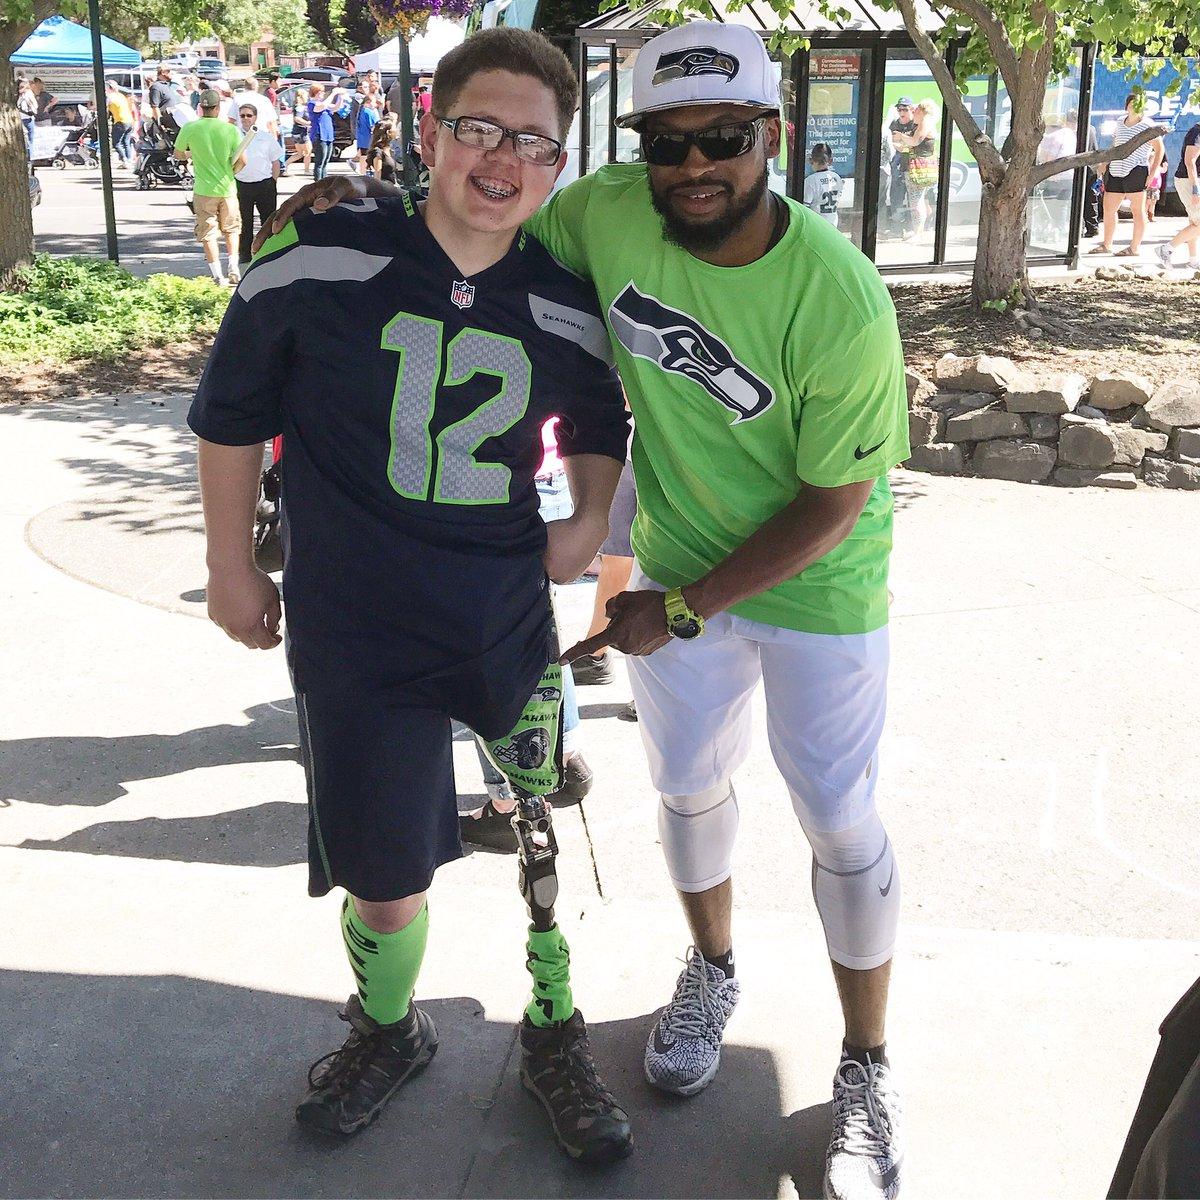 I've taken a ton of pictures on tour with the @seahawks on #12Tour. This is definitely one of the most impactful. https://t.co/R8RGCU1VEO